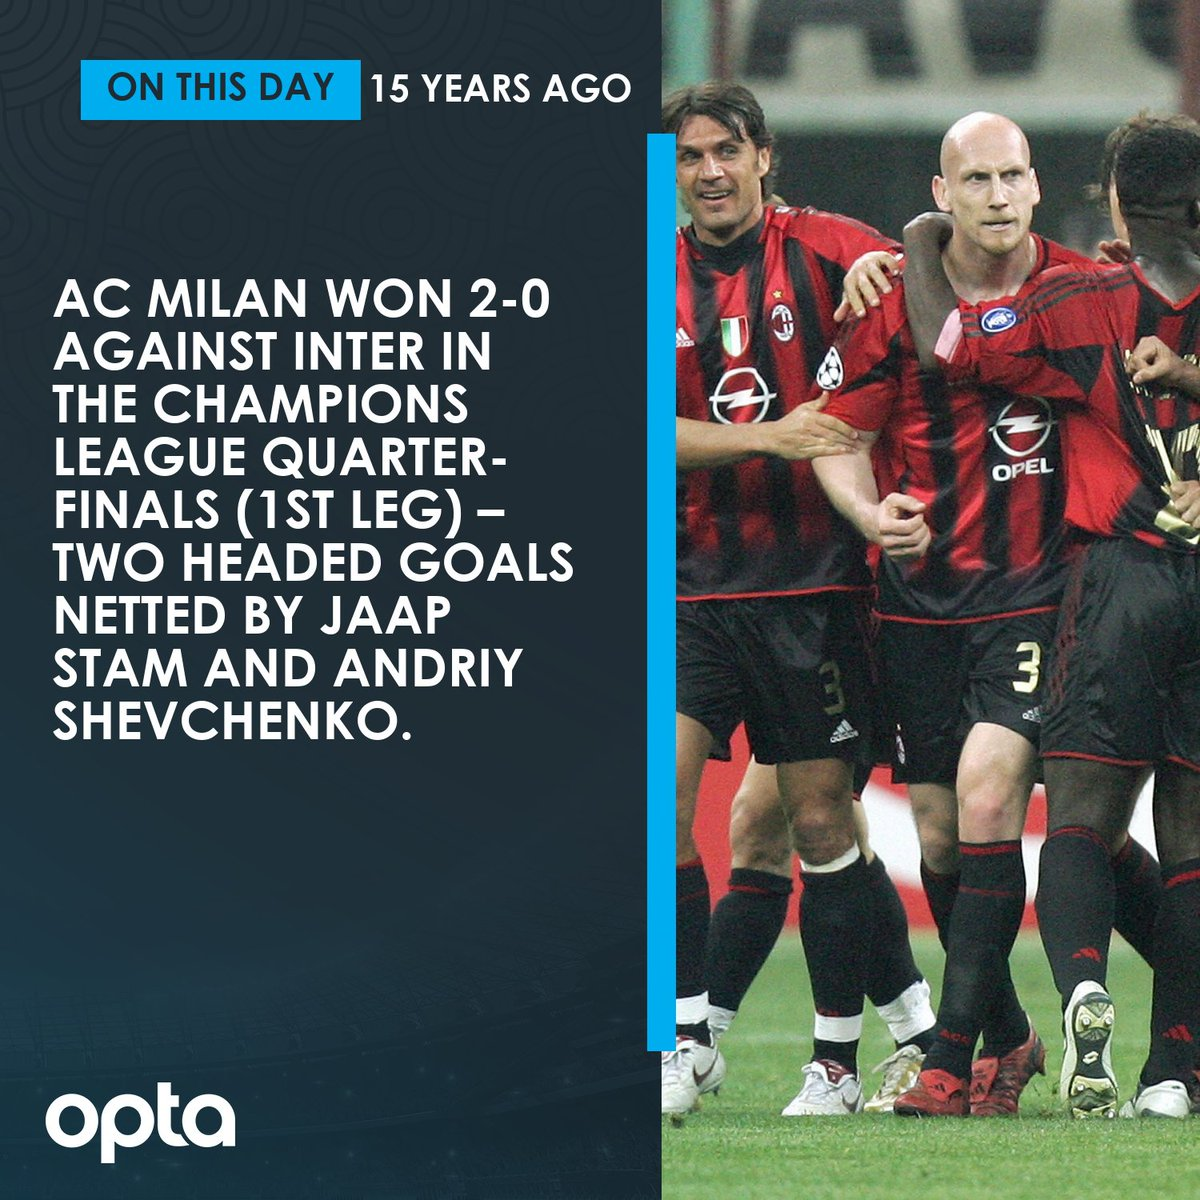 15 - #OnThisDay in 2005, #ACMilan won 2-0 against Inter in the Champions League Quarter-finals (1st leg) – two headed goals netted by Jaap Stam and Andriy Shevchenko. Devil.  #6April #UCLpic.twitter.com/MwgzVHv7dW